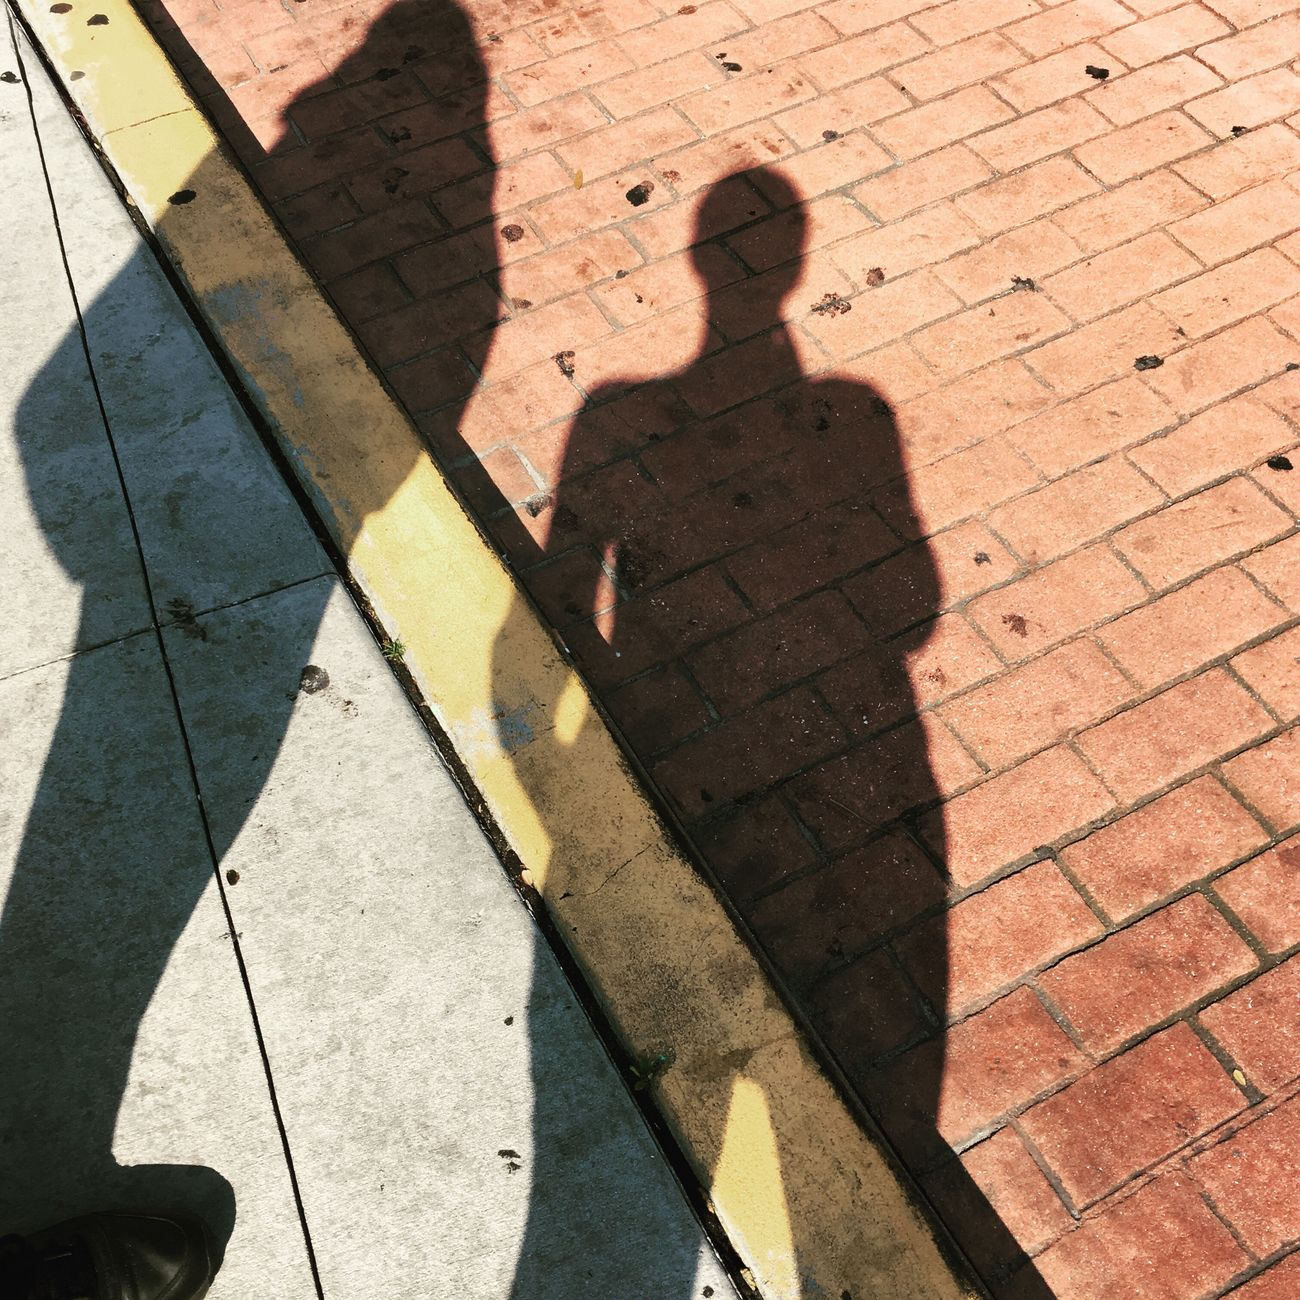 Shadow Focus On Shadow Outdoors Day Florida Downtown Tampa Yellow City Colorblocking Yellow Line Bus Stop Waiting